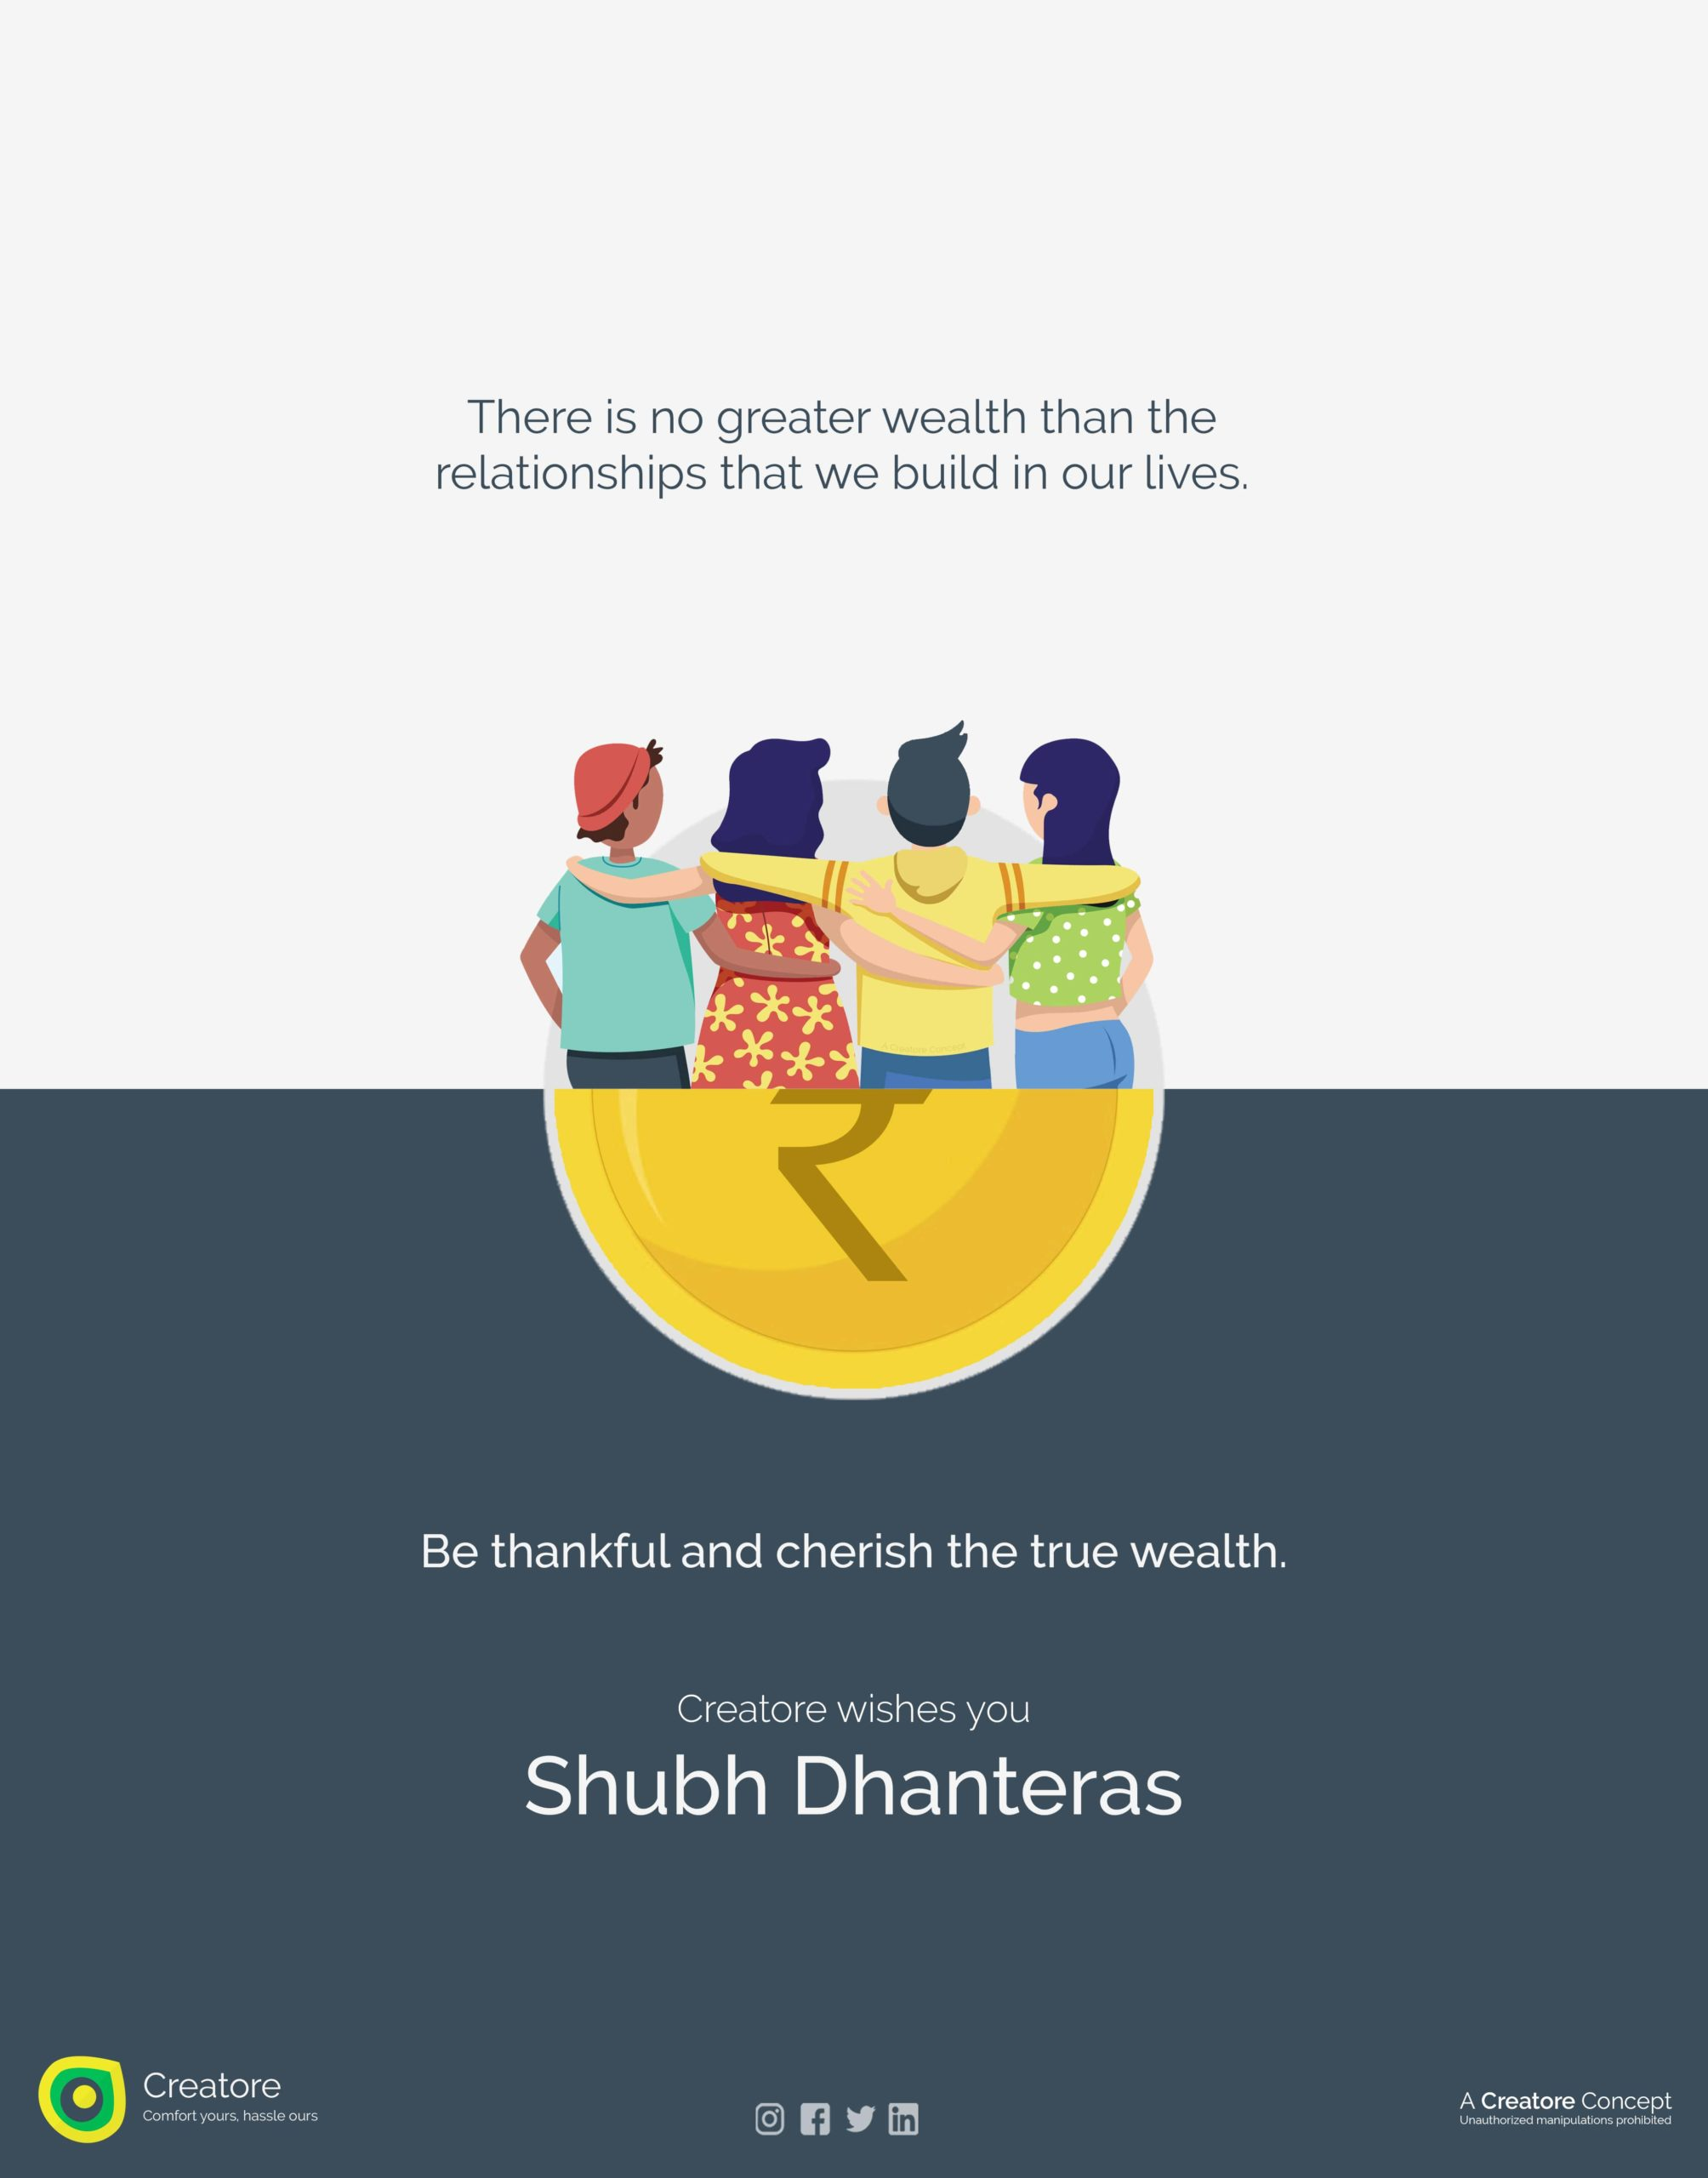 Creative Advertising and Marketing Agency Dhanteras Corporate Greeting